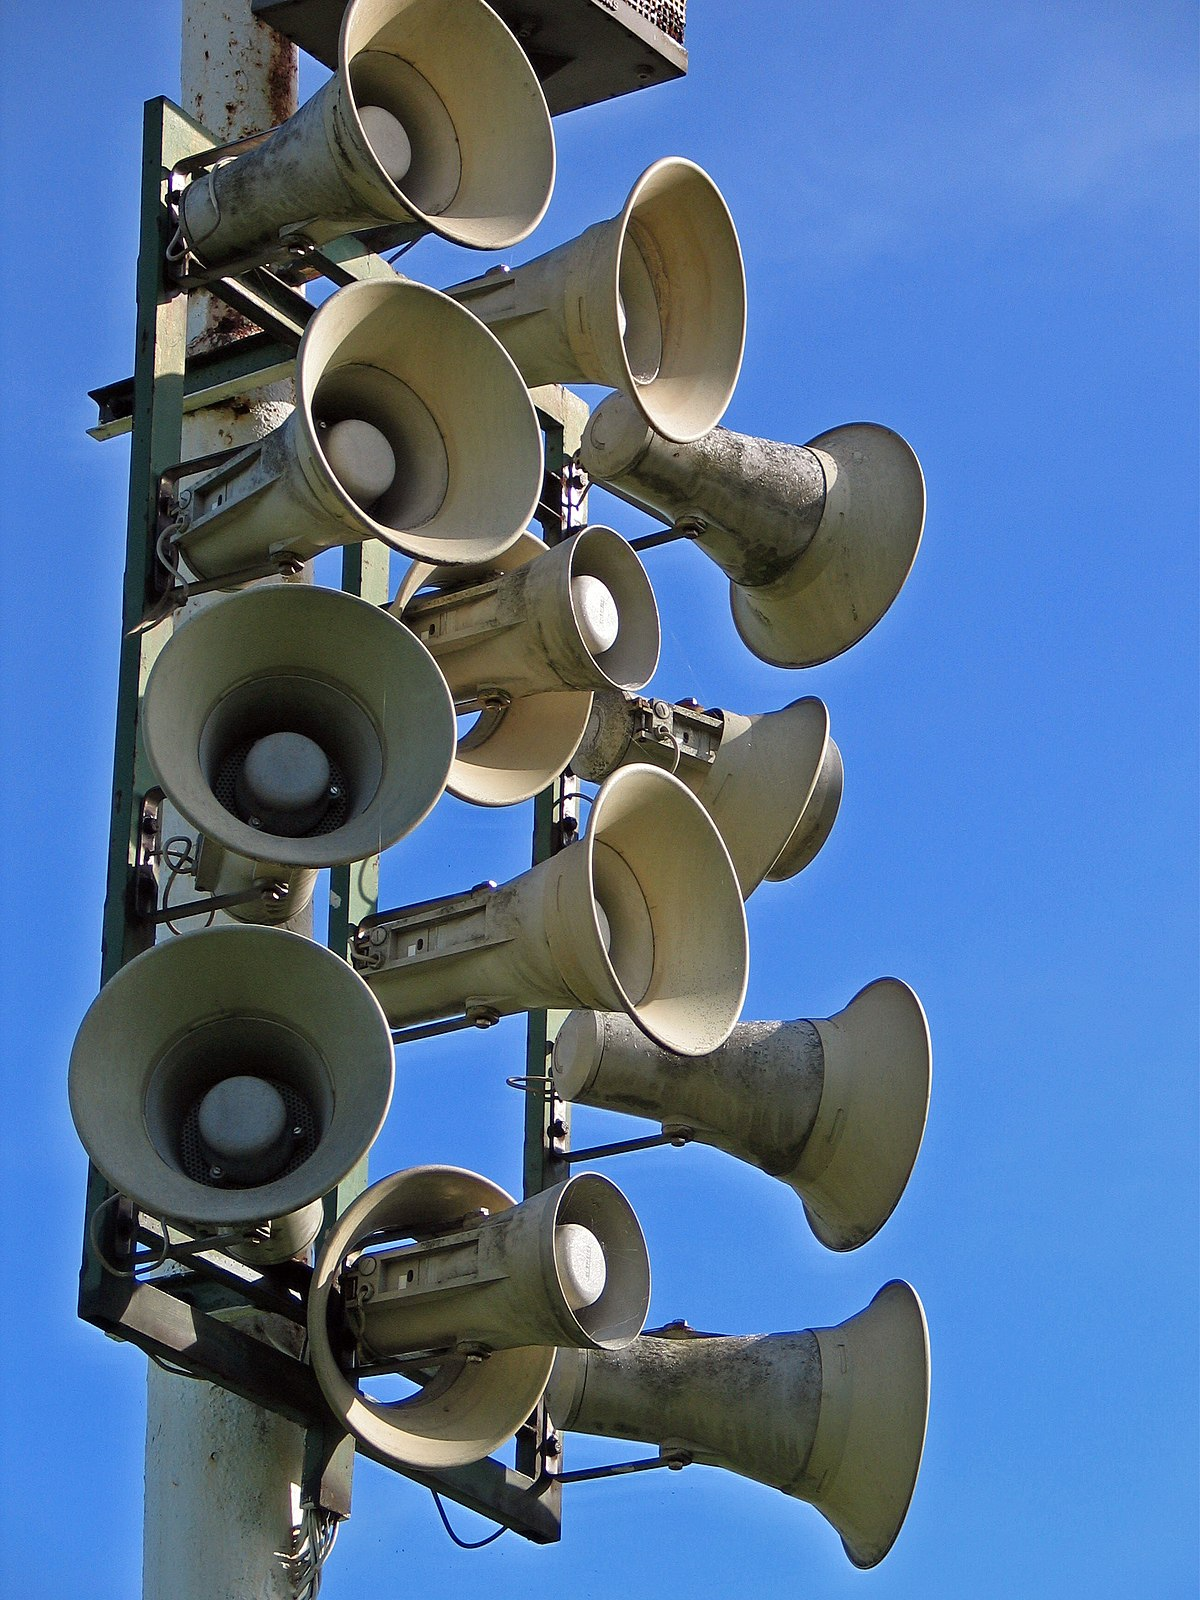 Public address system - Wikipedia